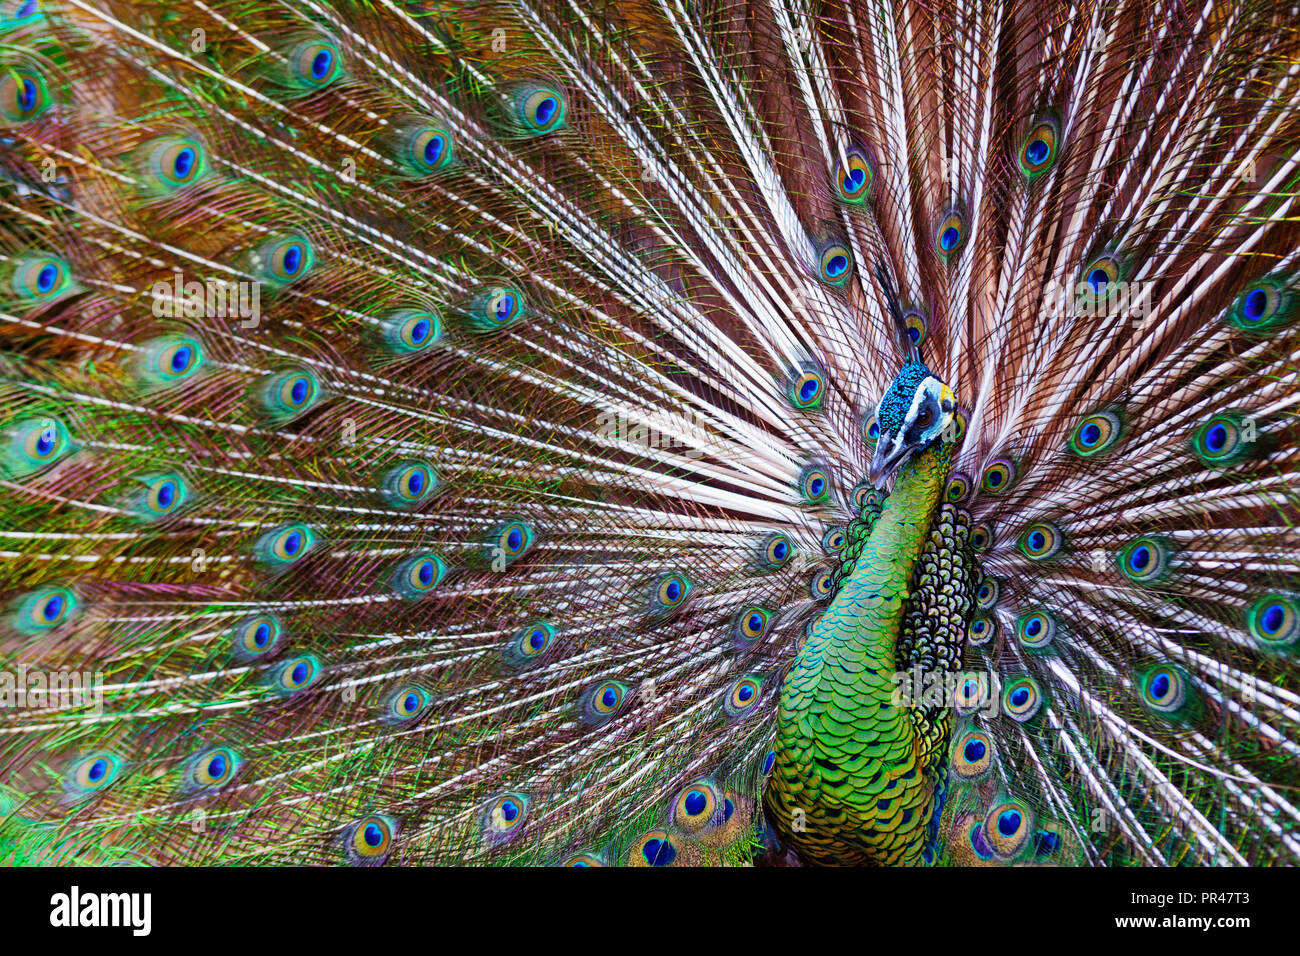 Portrait of wild male peacock with fanned colorful train. Green Asiatic peafowl display tail with blue and gold iridescent feather. Bird plumage - Stock Image